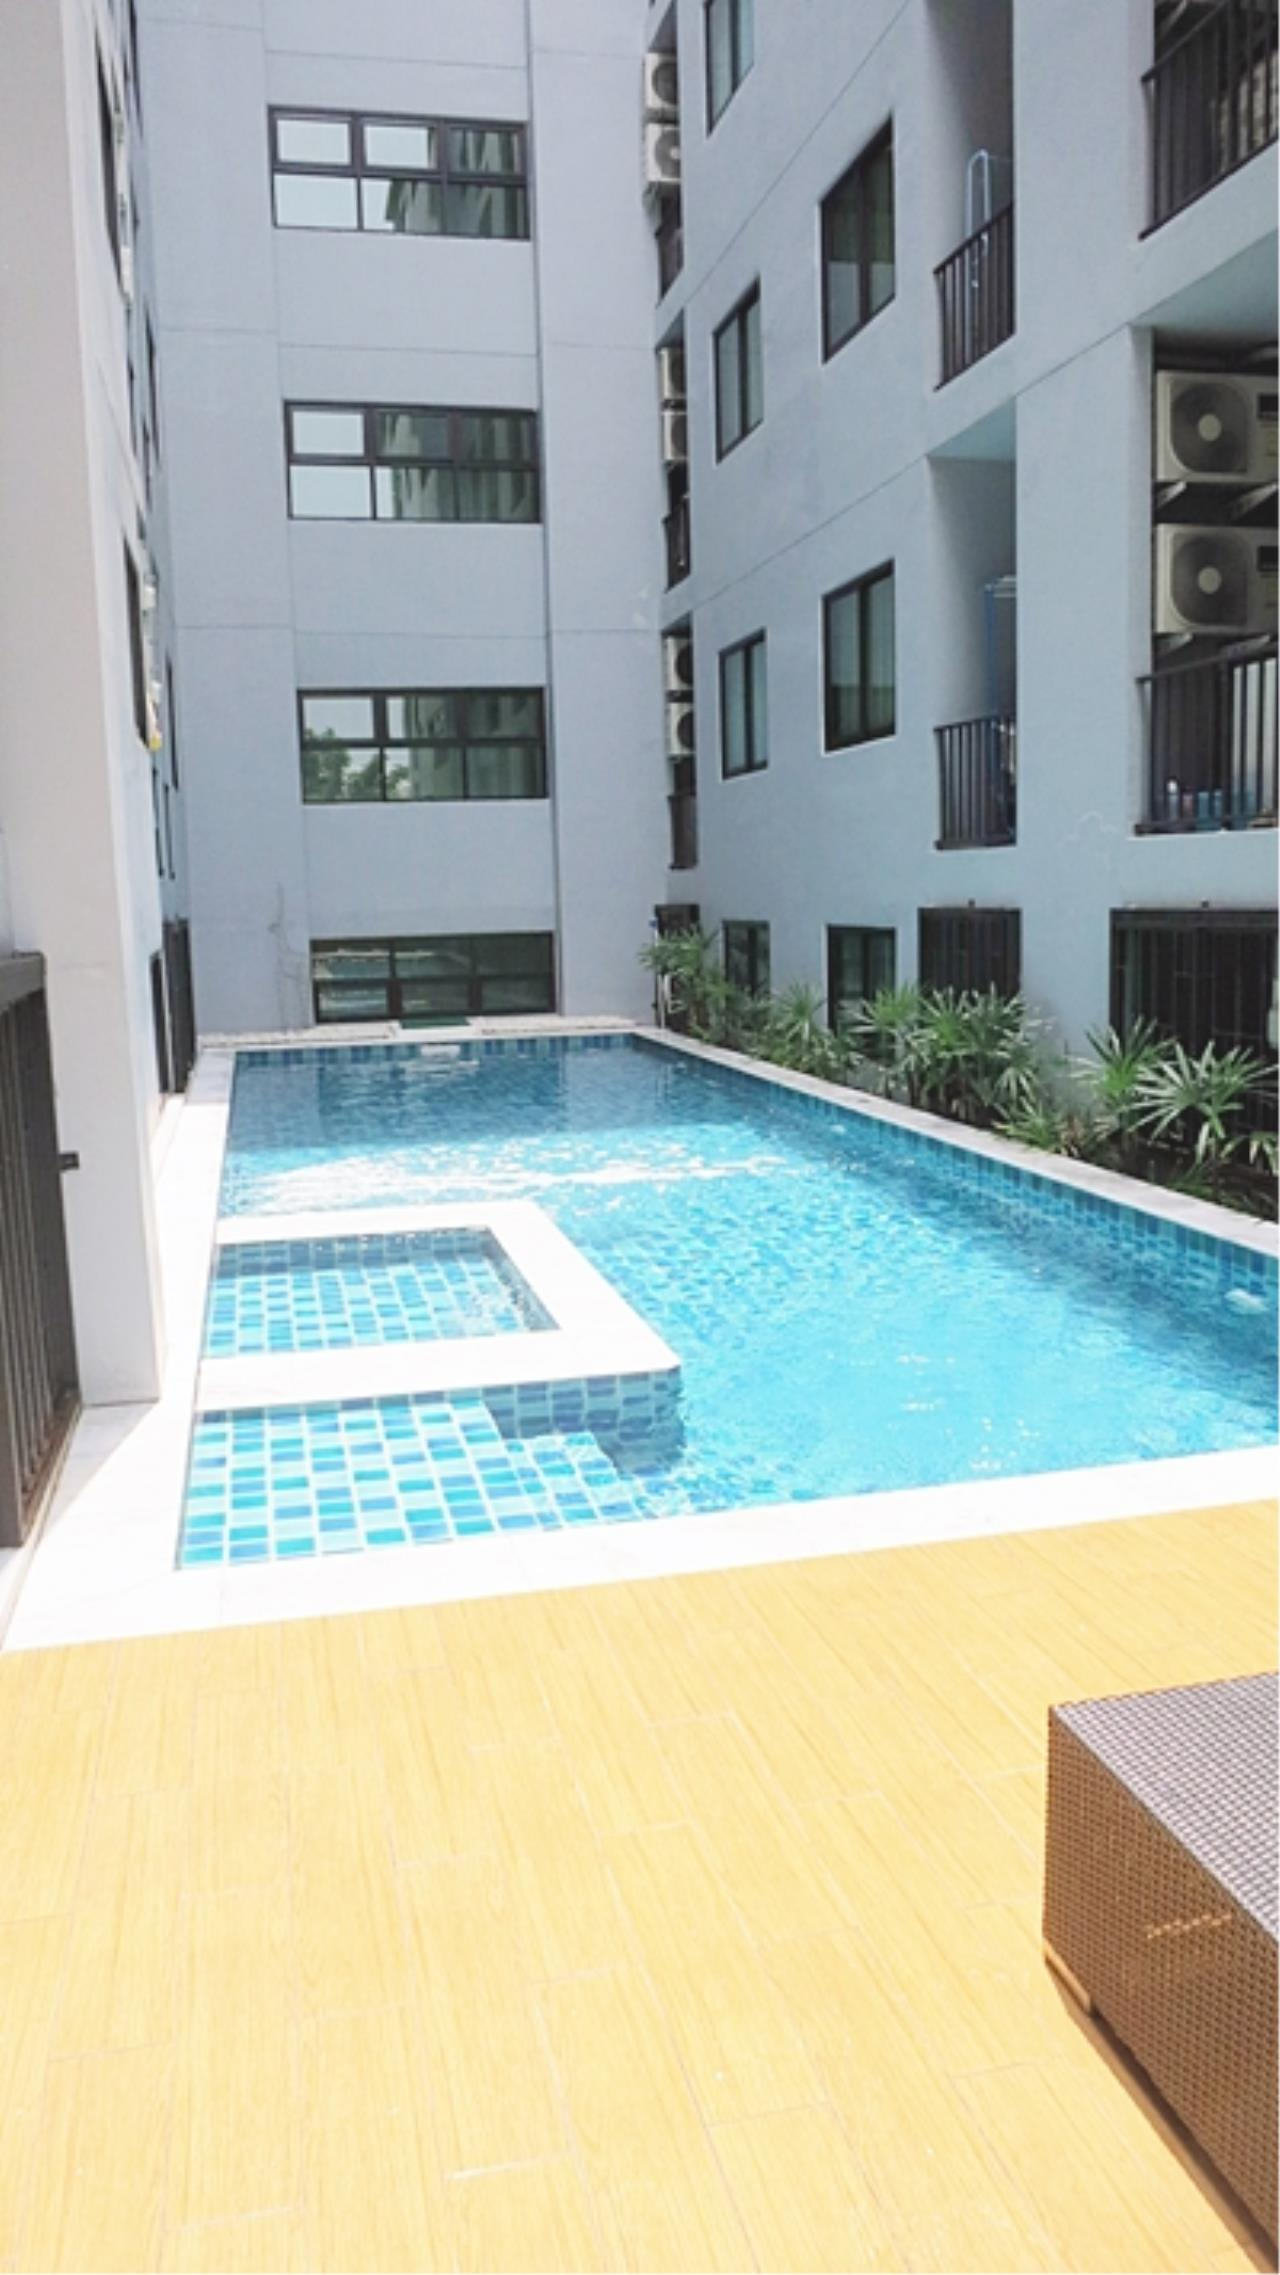 Estate Corner Agency (Samut Prakan) Agency's Condo for sale B-loft Sukhumvit  115  close to BTS  only 500 m. Fully furnished. 10